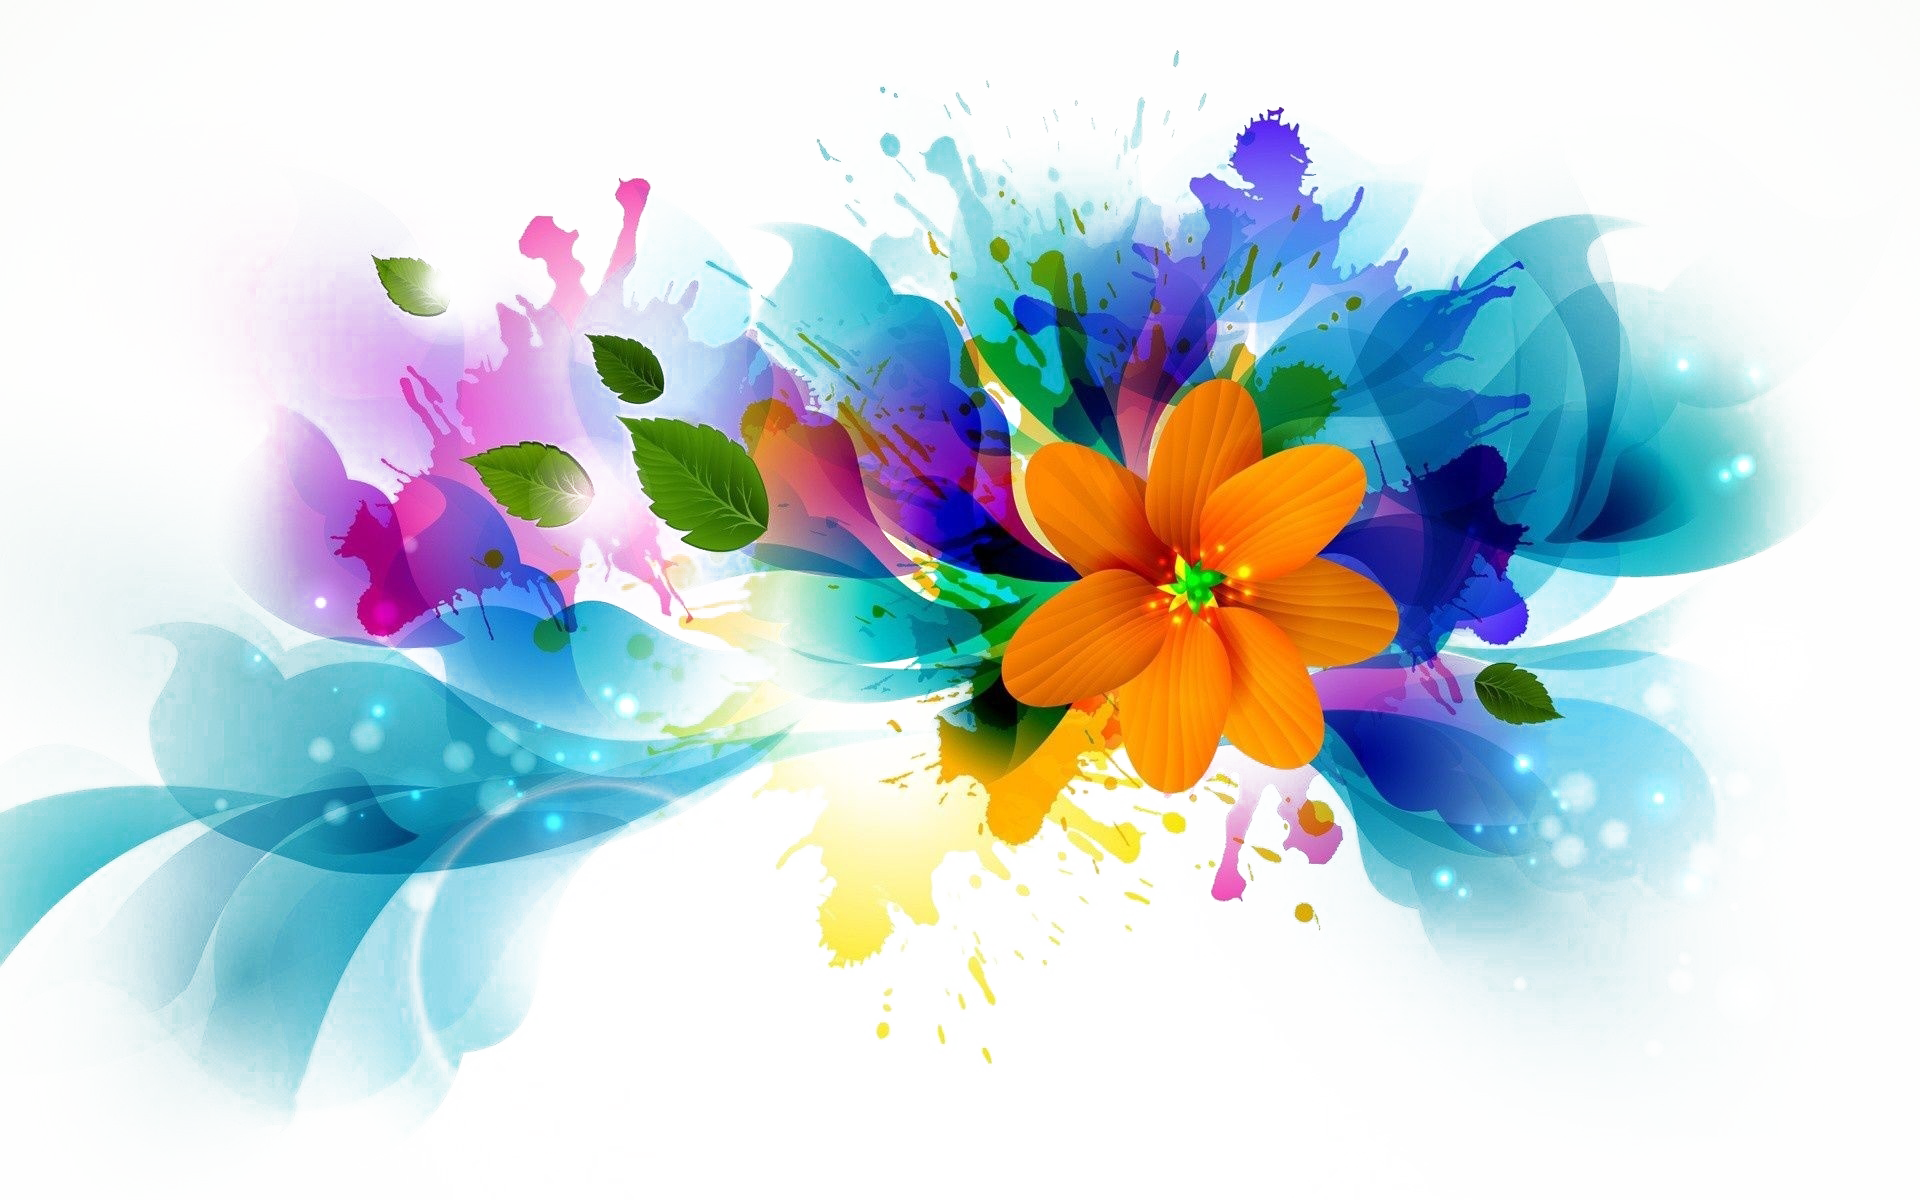 Abstract flower image arts. Flowers background png graphic free stock